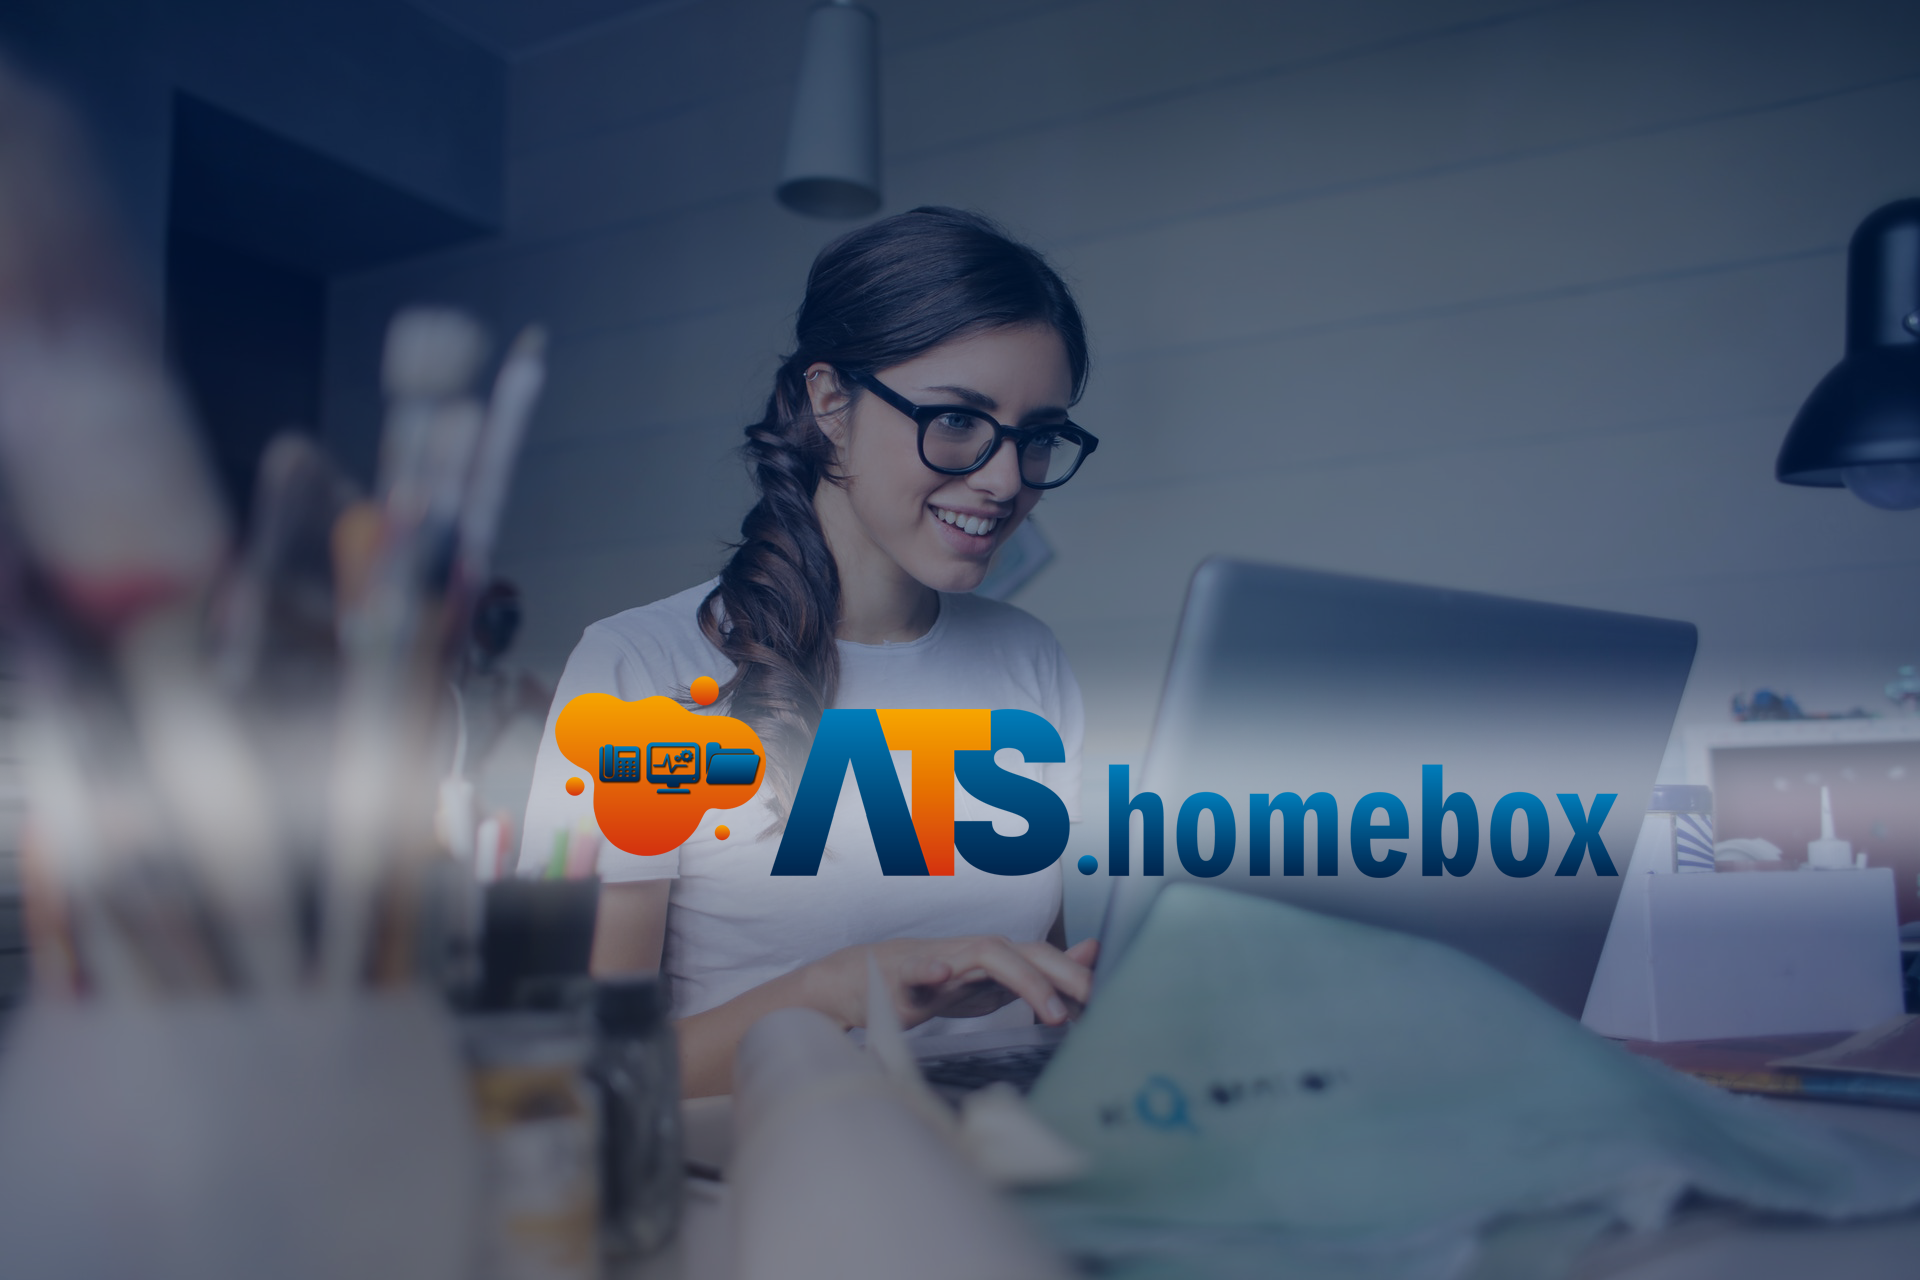 ATS.homebox